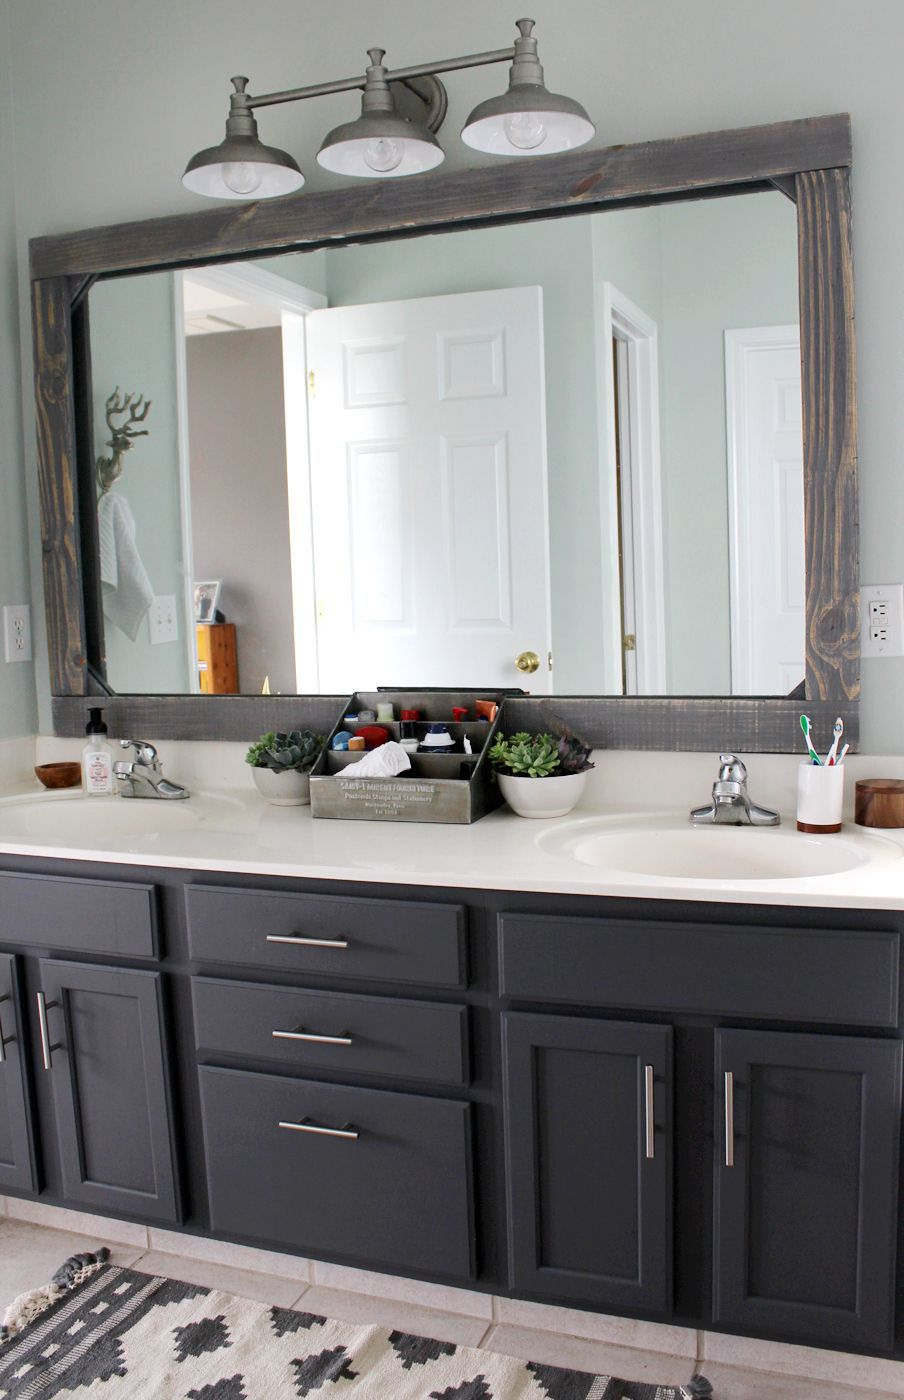 Bathroom Mirror Ideas To Reflect Your Style Bathroom Remodel